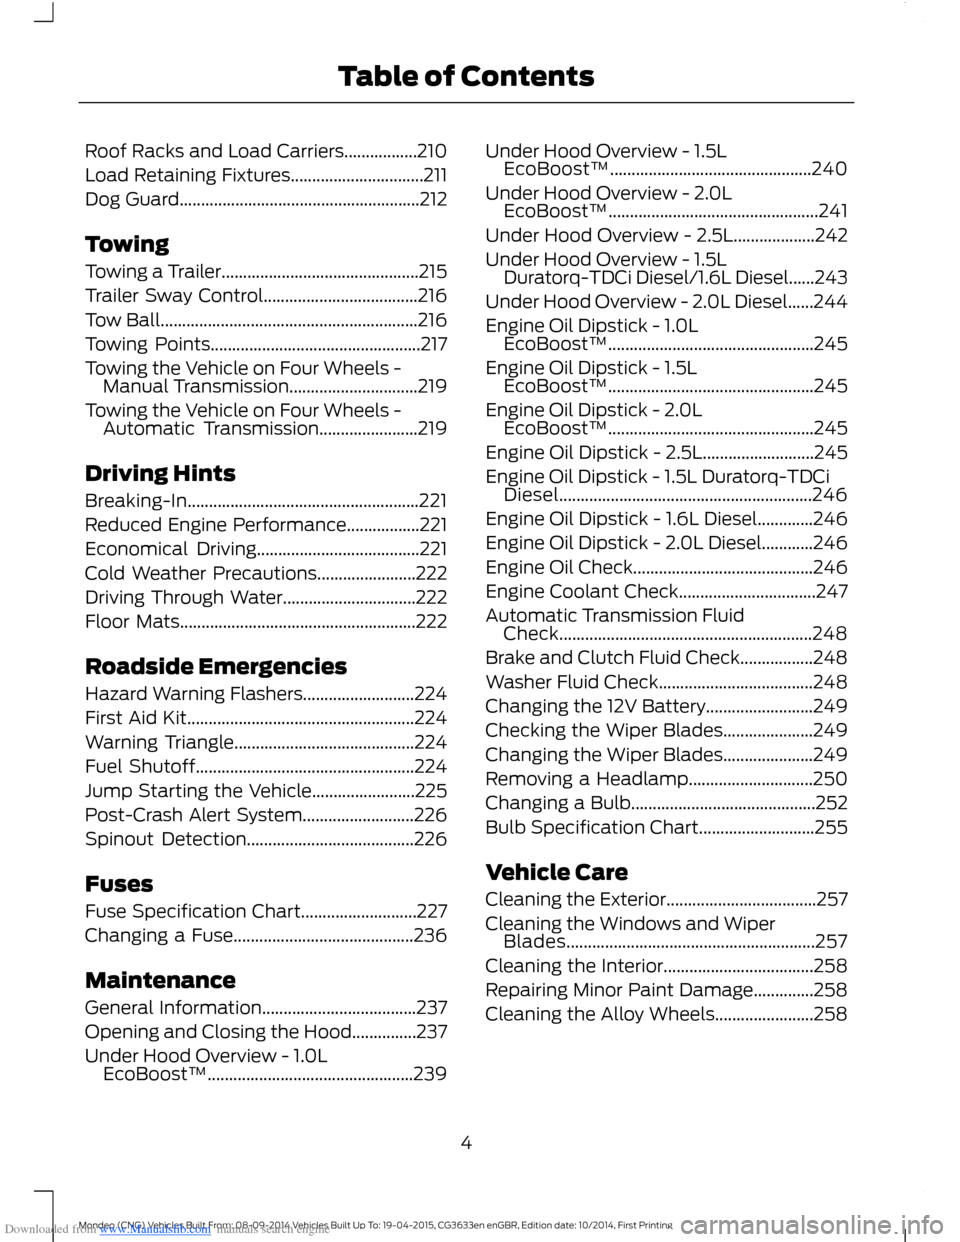 FORD MONDEO 2014 4.G Owners Manual, Page 6